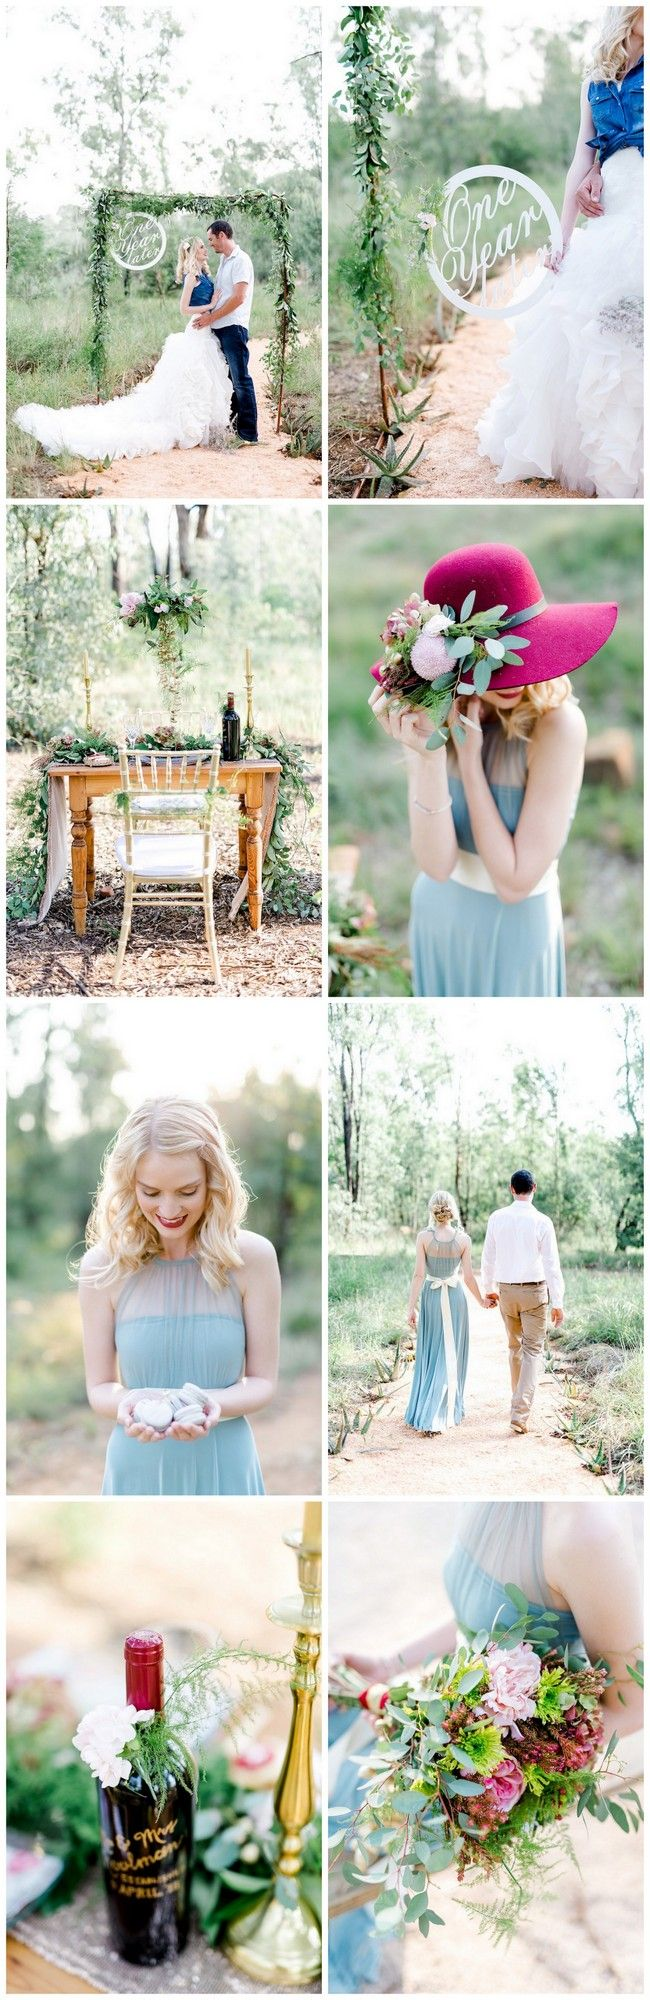 Perfect First Wedding Anniversary Photo Ideas @damorphoto . See more stealworthy ideas: http://www.confettidaydreams.com/perfect-first-wedding-anniversary-photo-shoot/